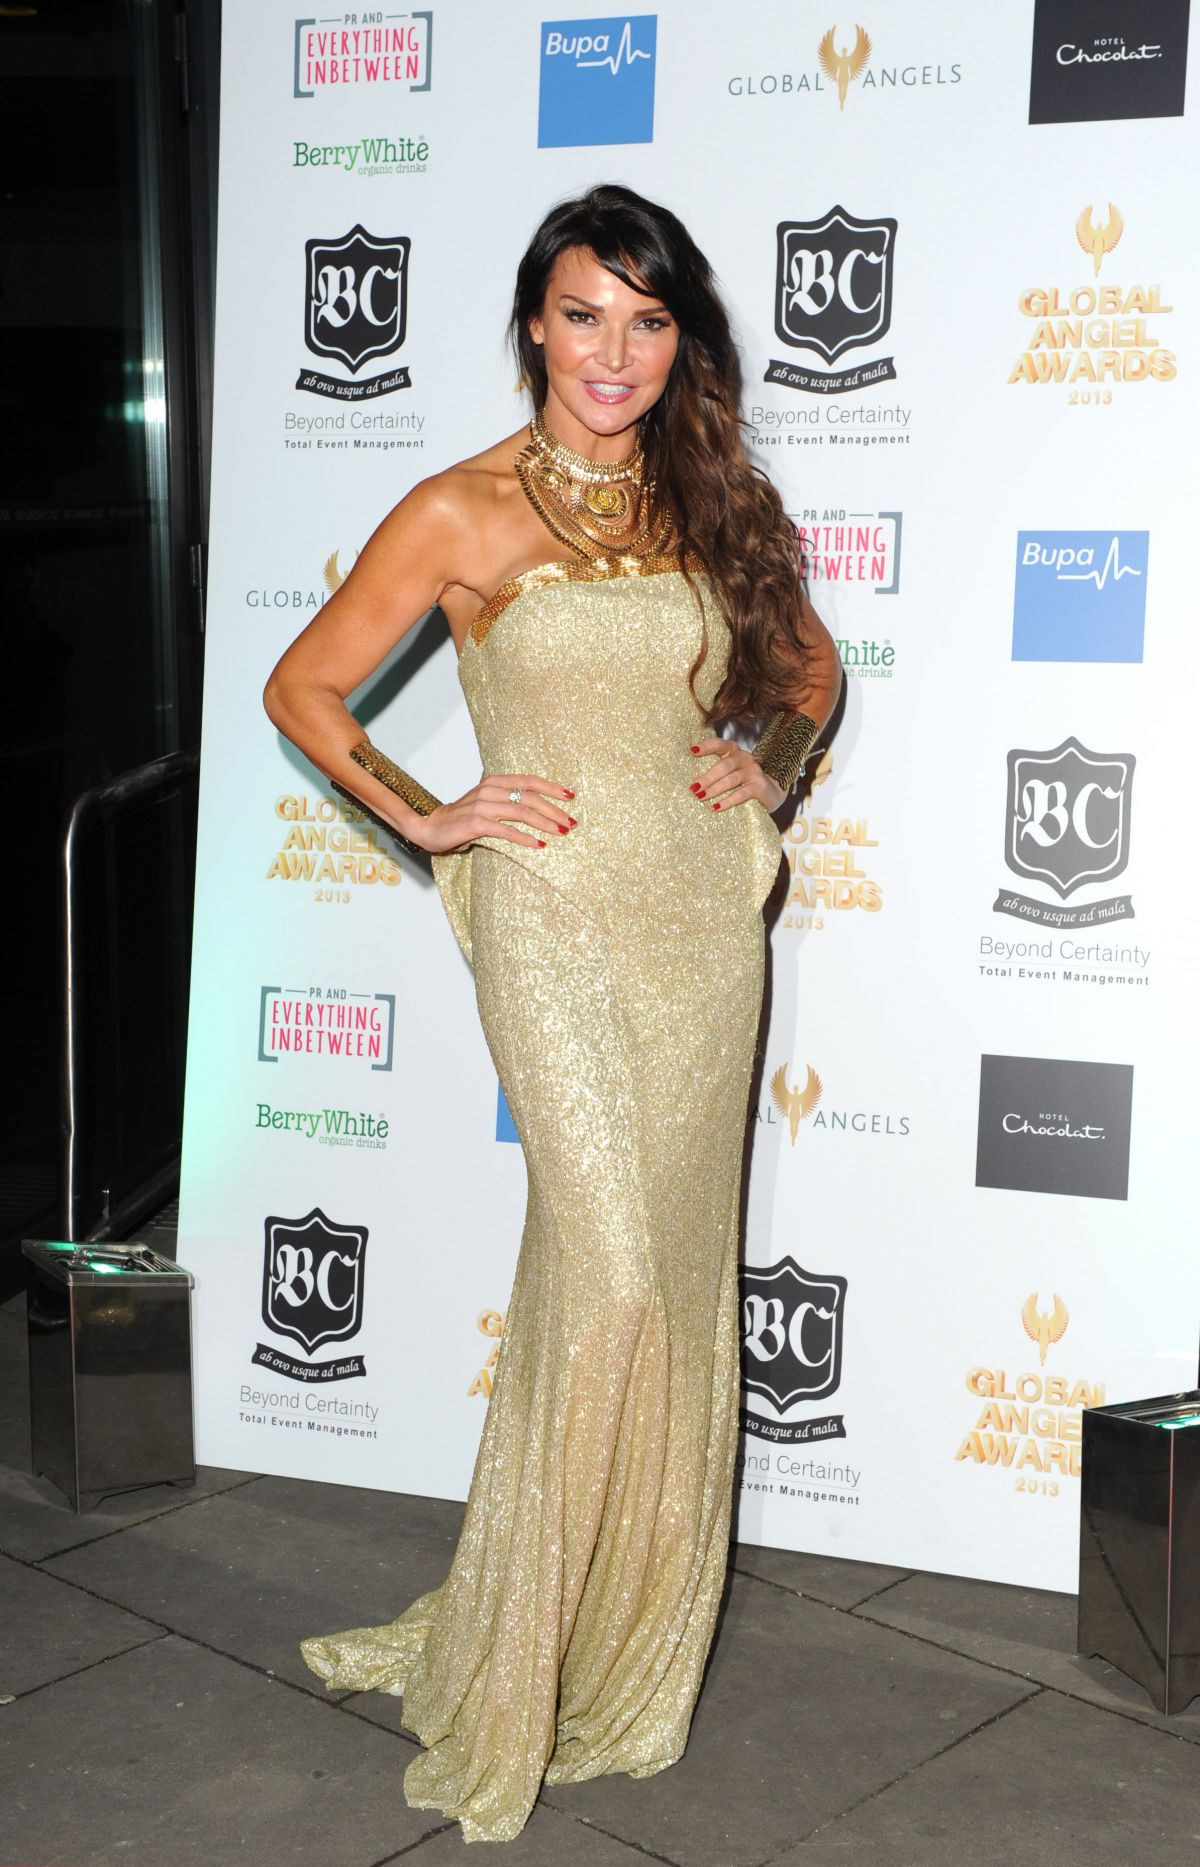 Lizzie Cundy At The Global Angel Awards 2013 In London